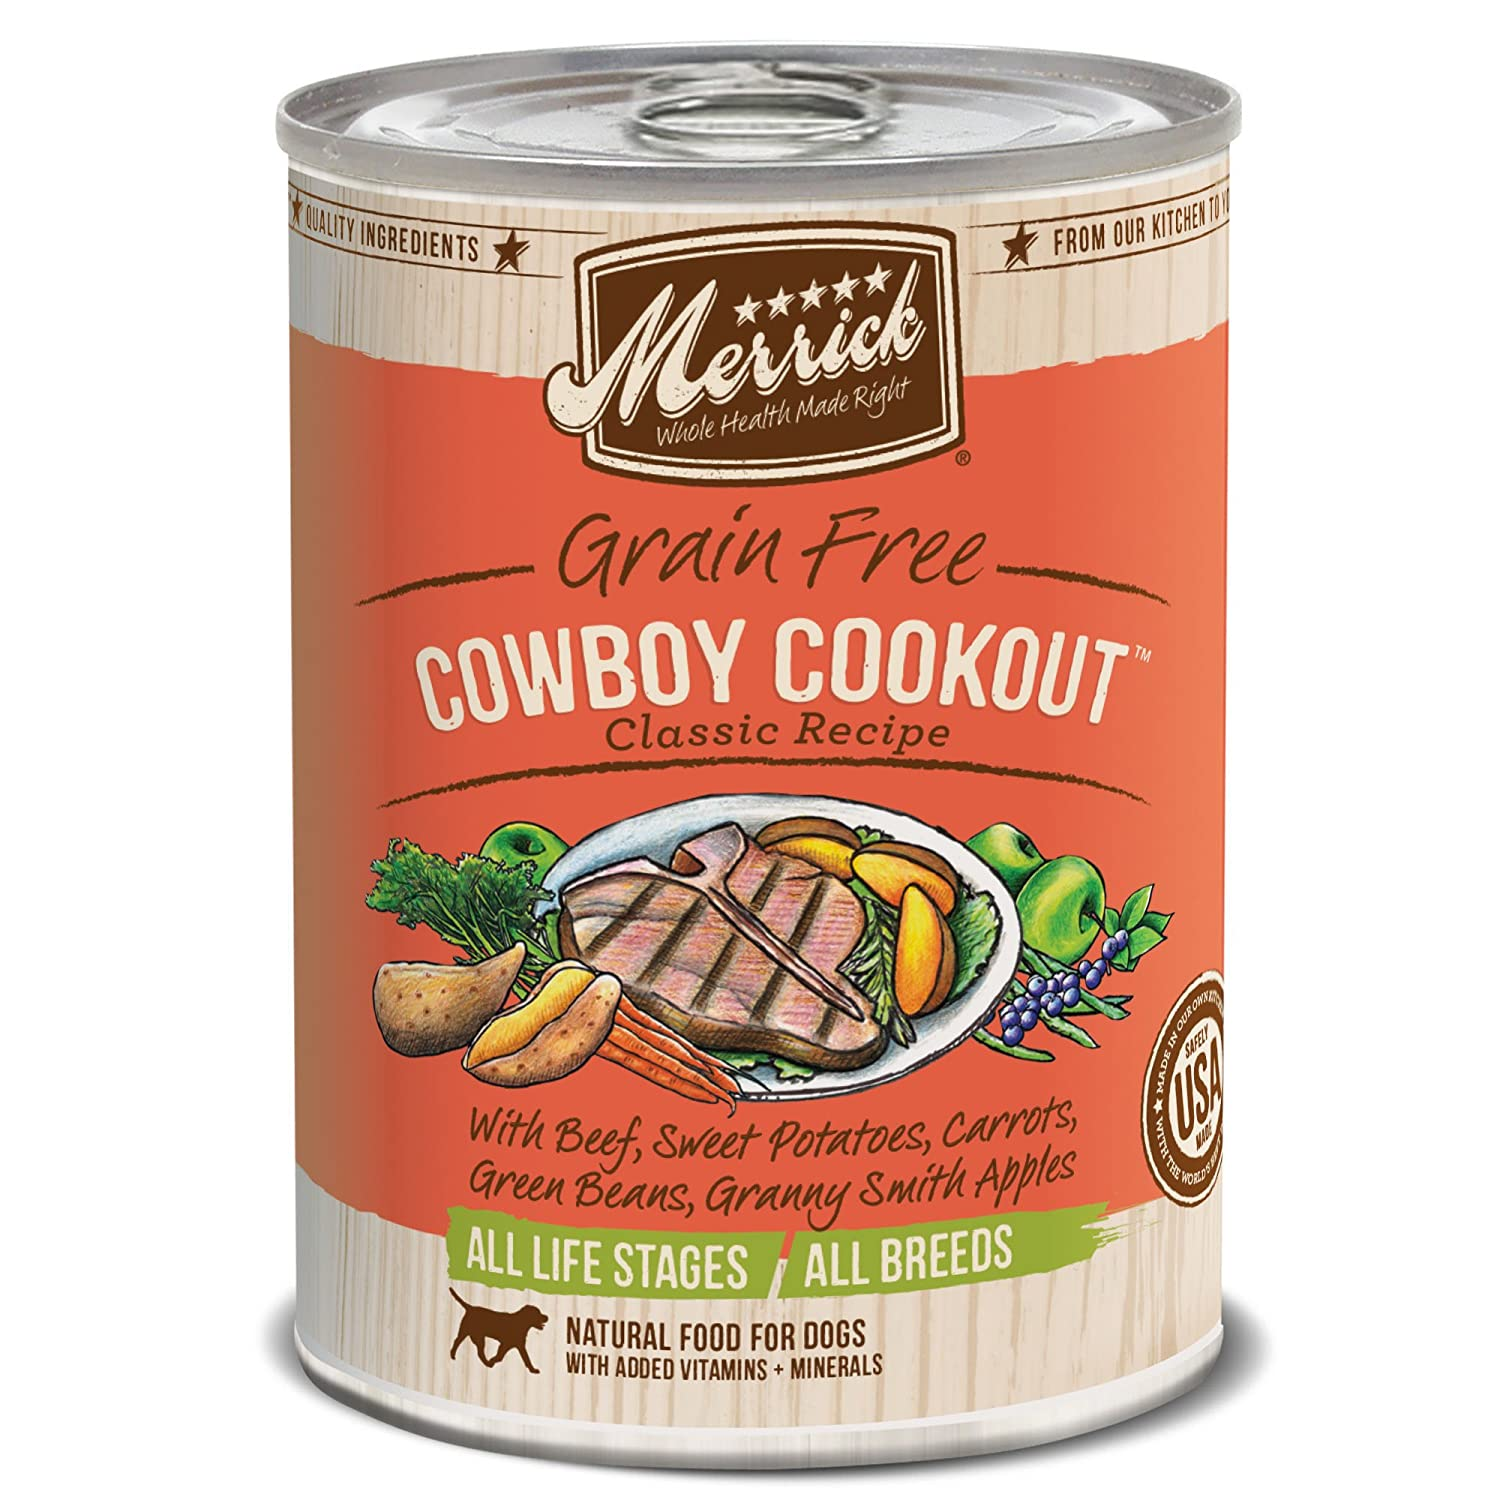 2. Merrick Grain-Free Cowboy Cookout Canned Dog Food